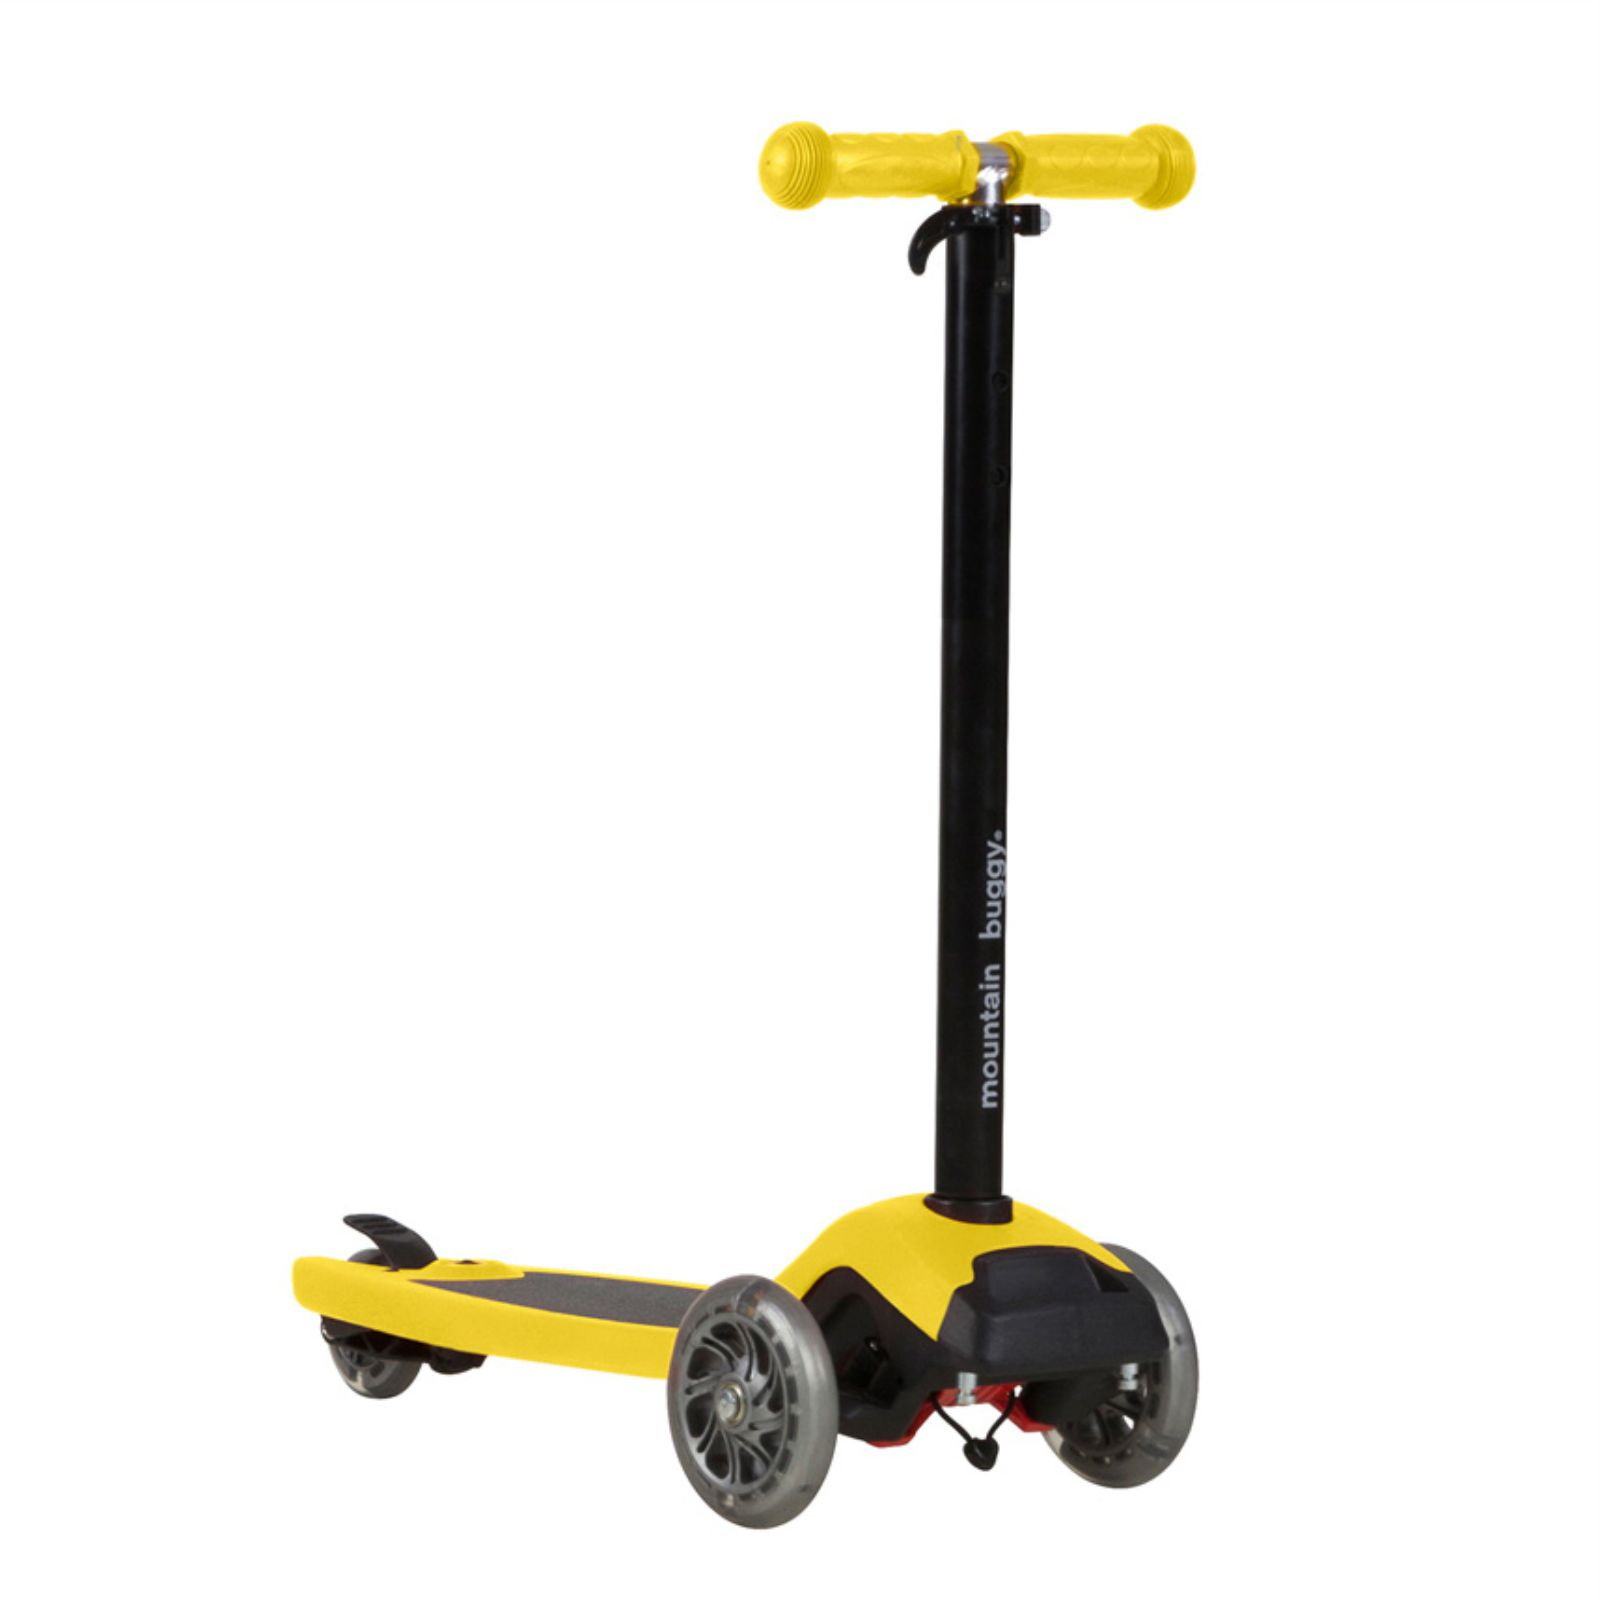 Mountain Buggy Freerider Stroller Board Scooter Yellow